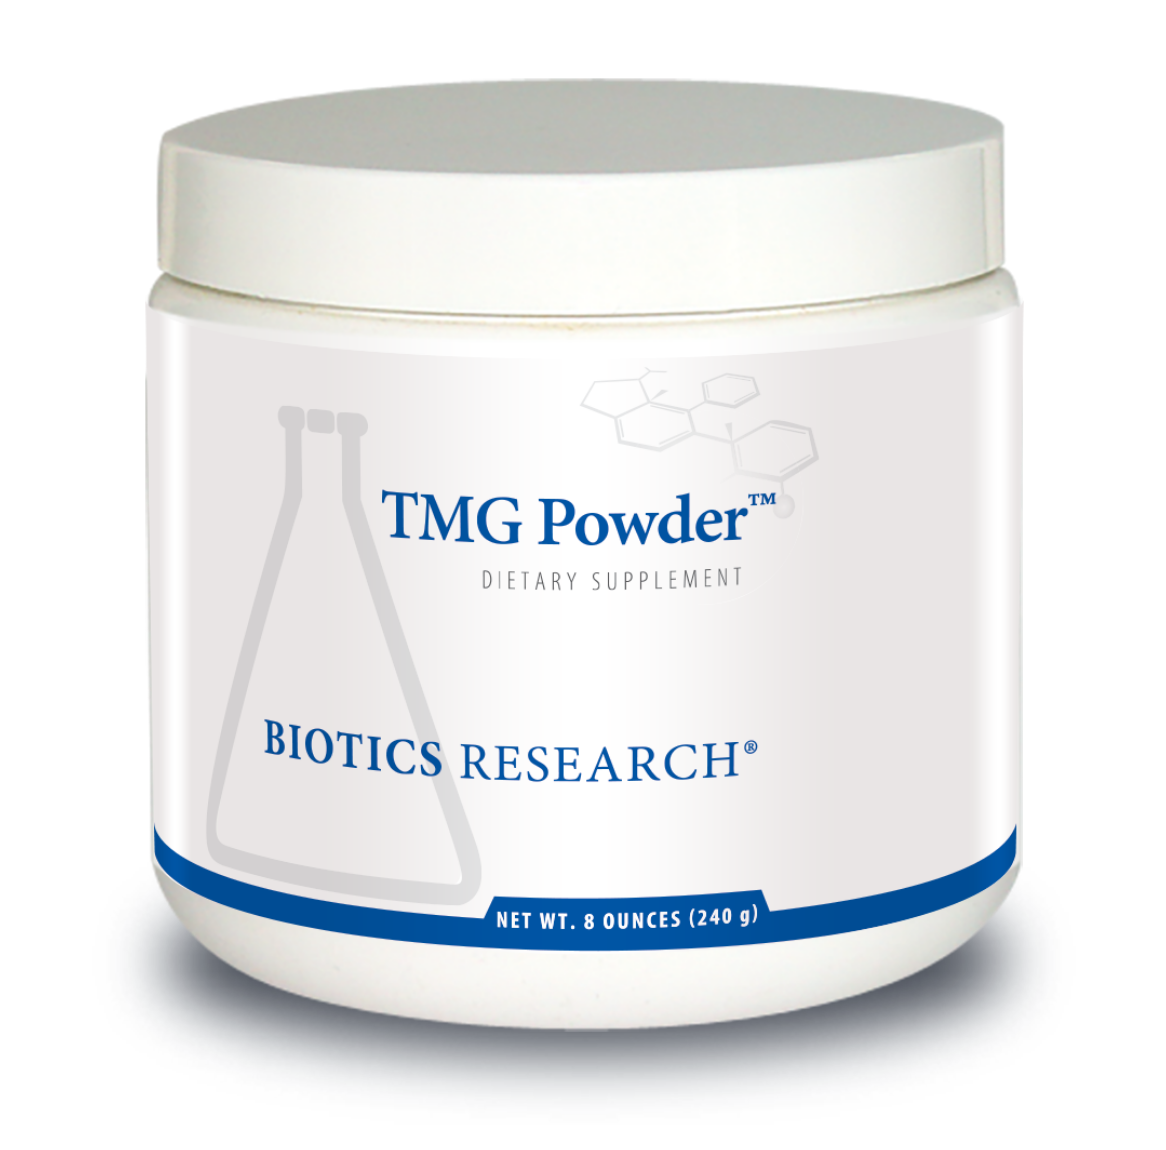 TMG Powder™